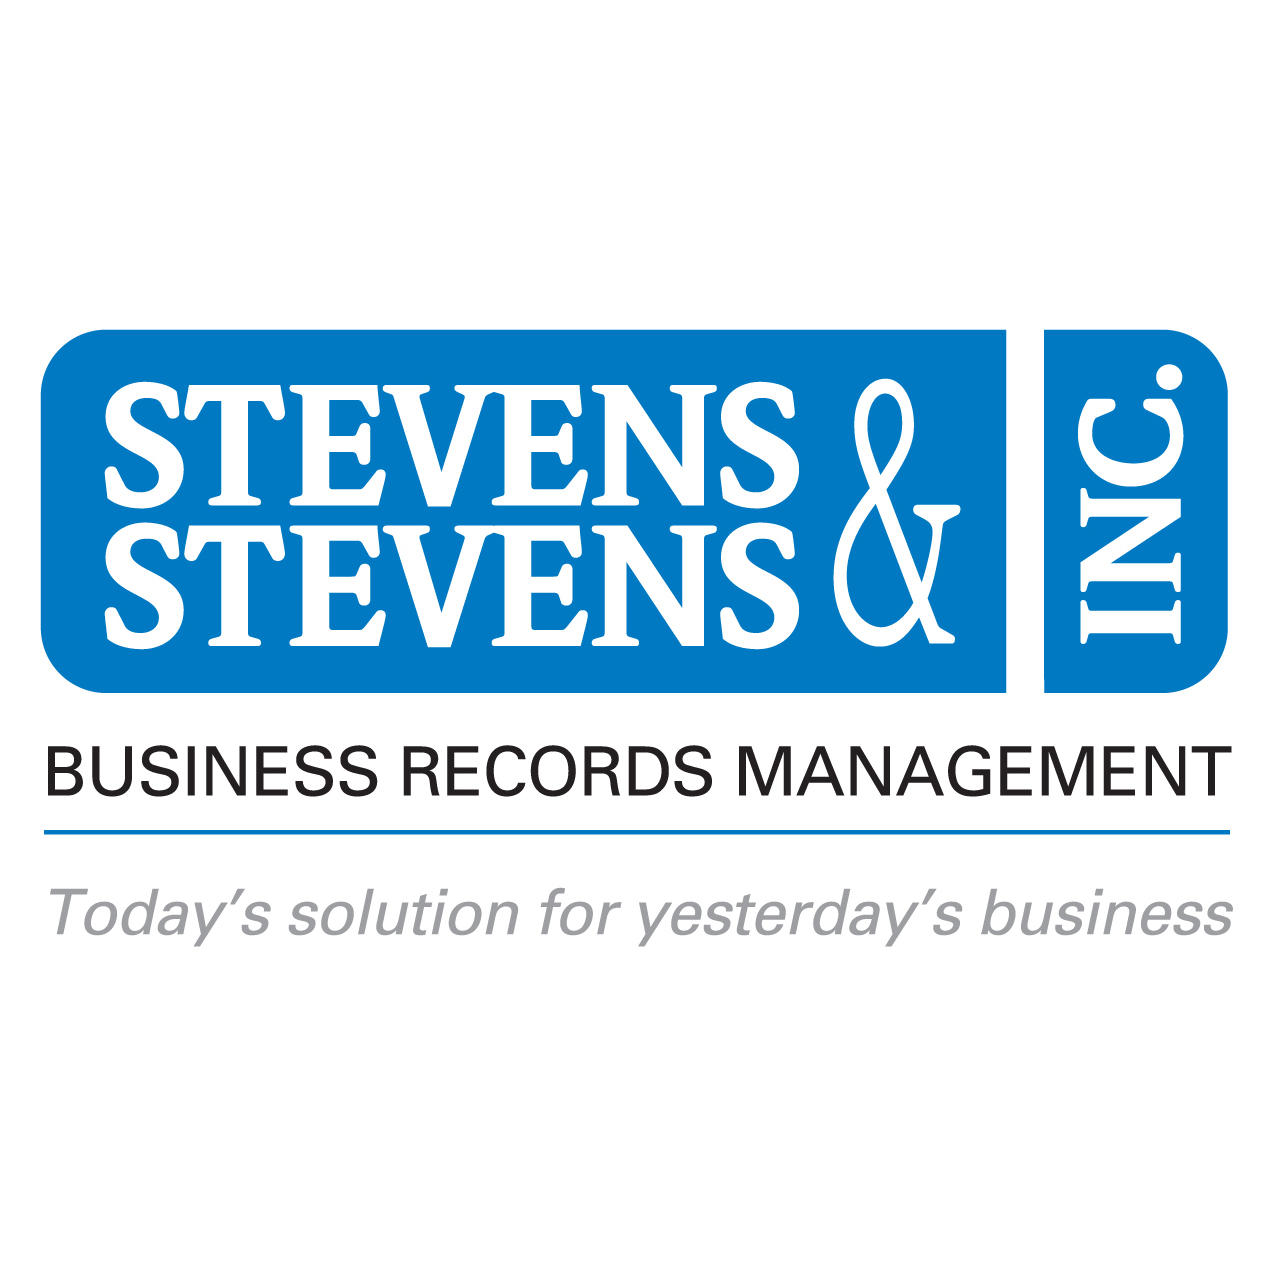 Stevens & Stevens Business Records Management image 9